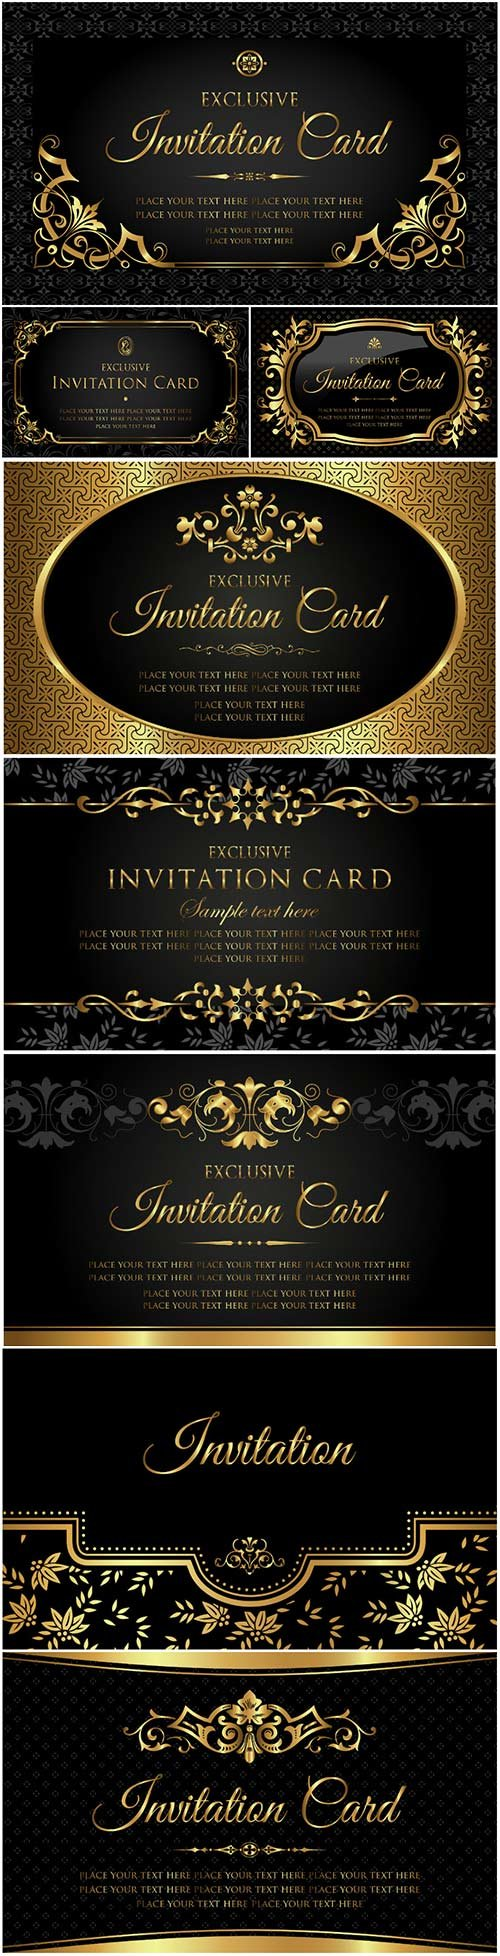 Invitation Luxury Vector Card Black And Gold Vintage Style